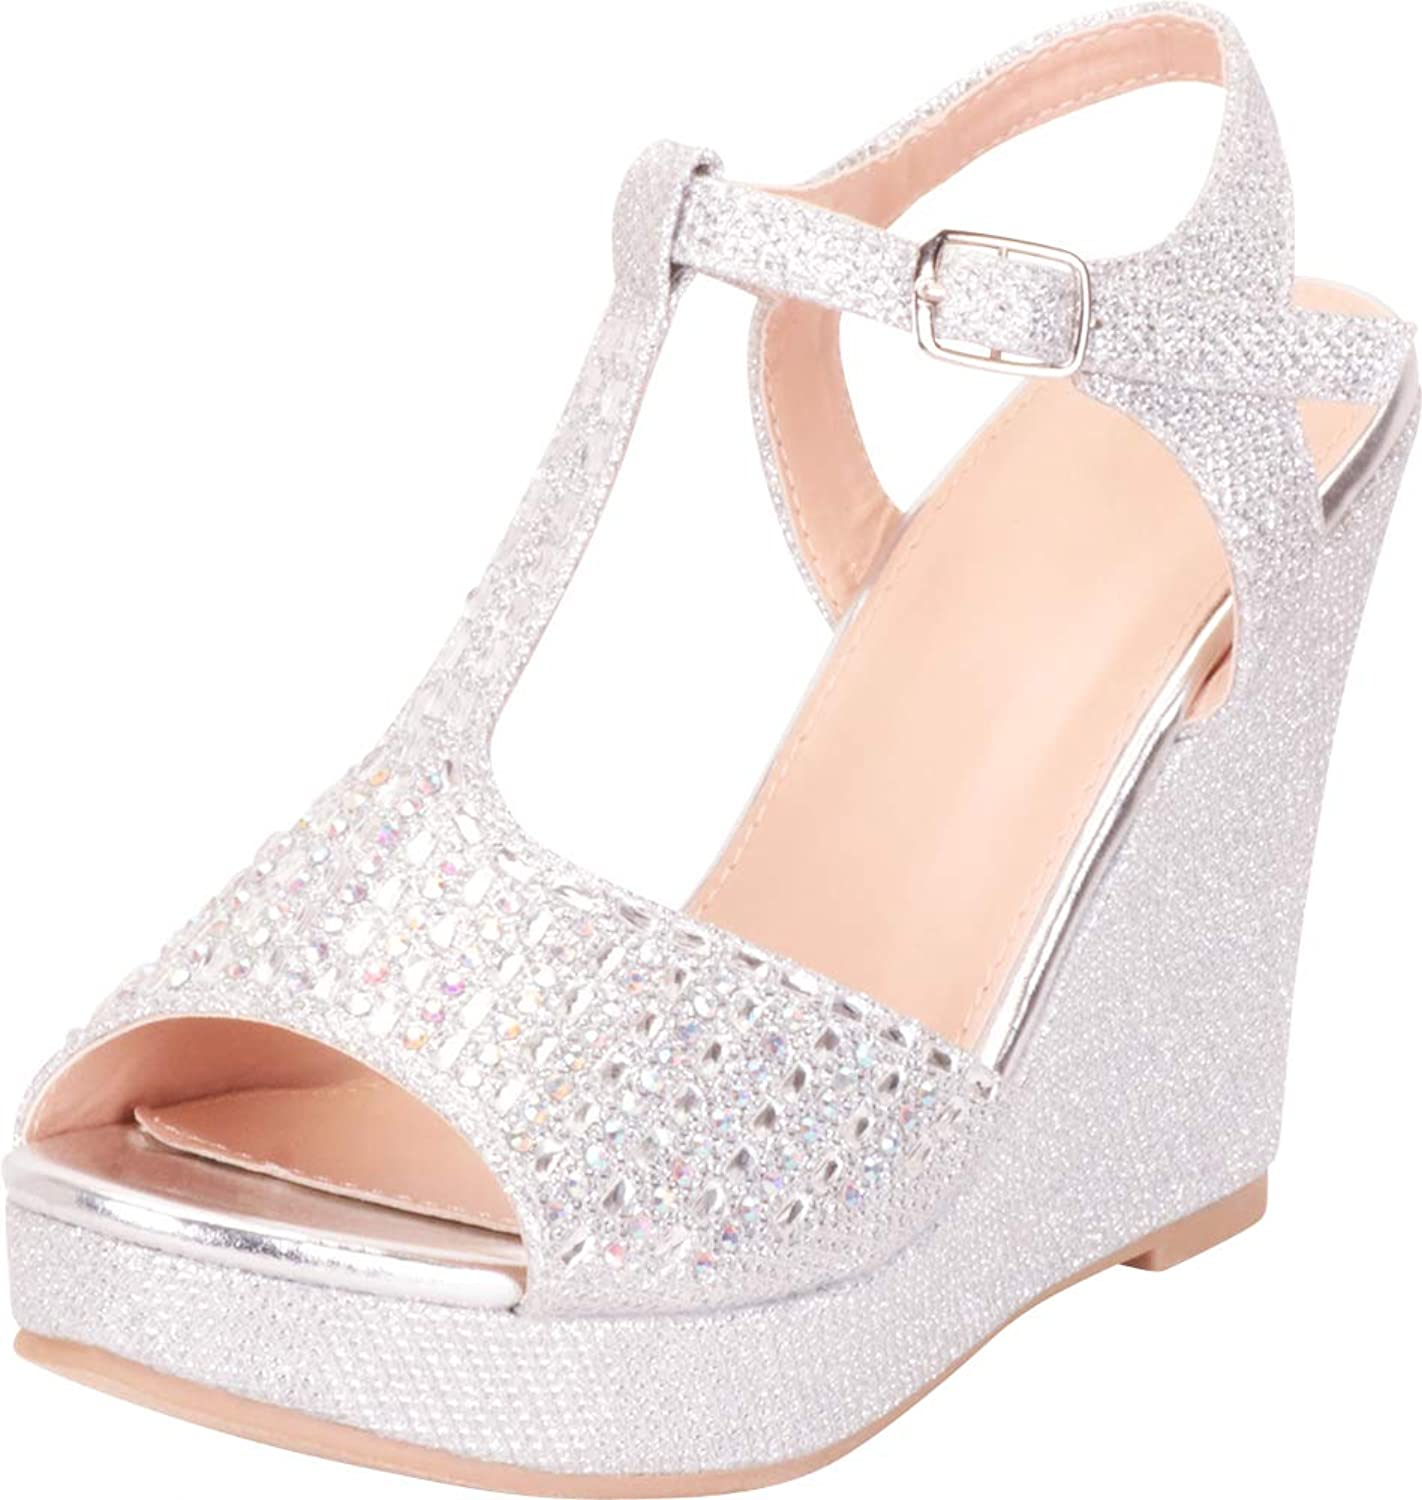 Cambridge Select Women's Open Toe T-Strap Crystal Rhinestone Chunky Platform Wedge Sandal